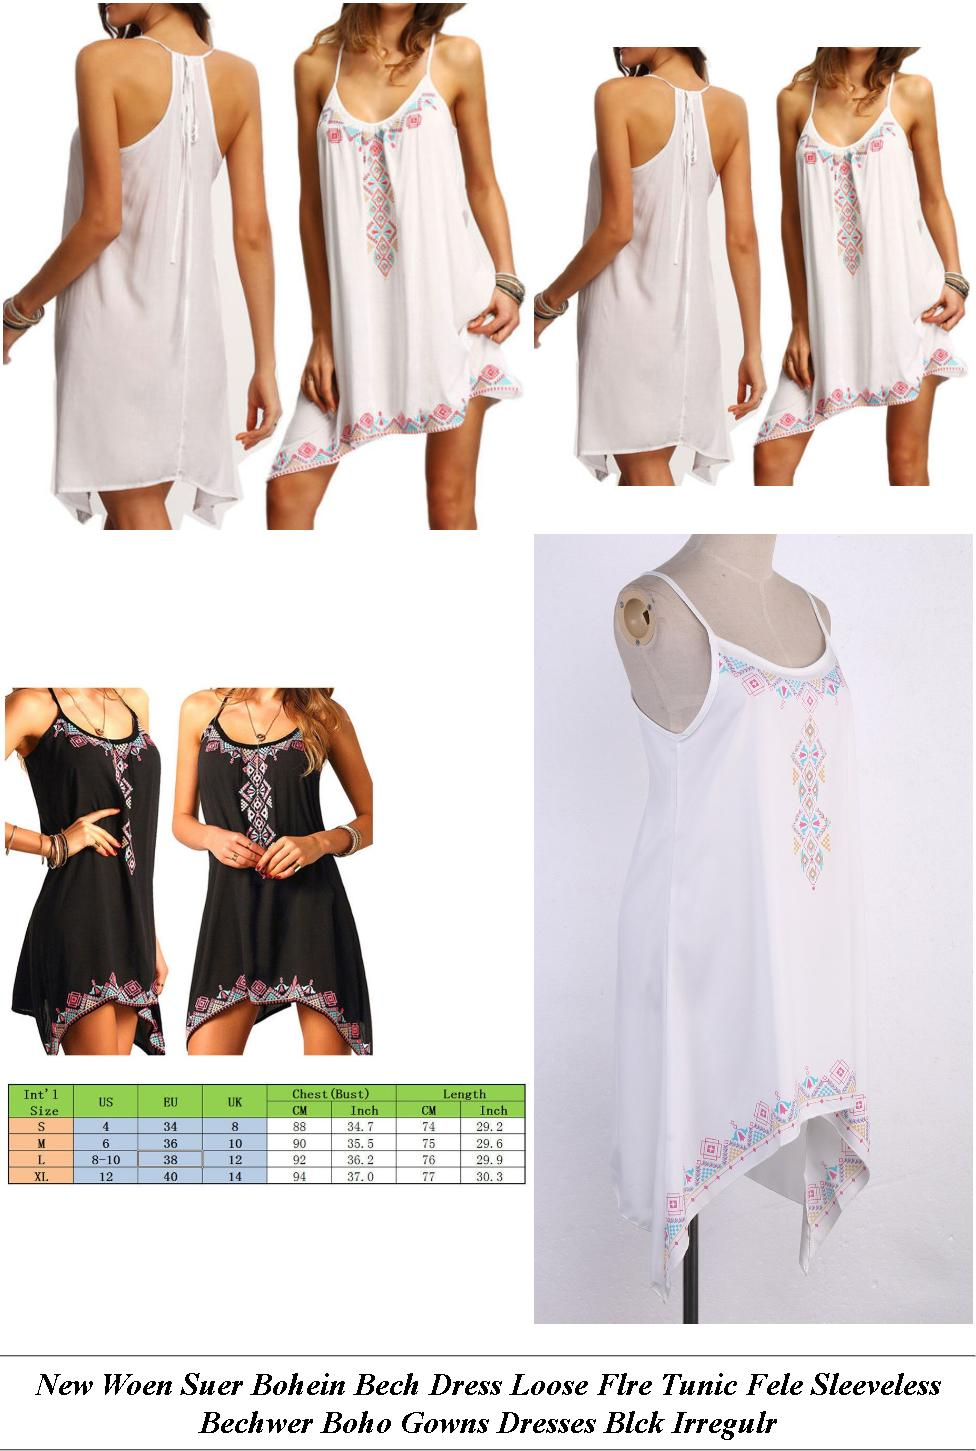 Est Shops For Prom Dresses In Montreal - Office Sale Online - Cheap Maxi Dresses And Skirts